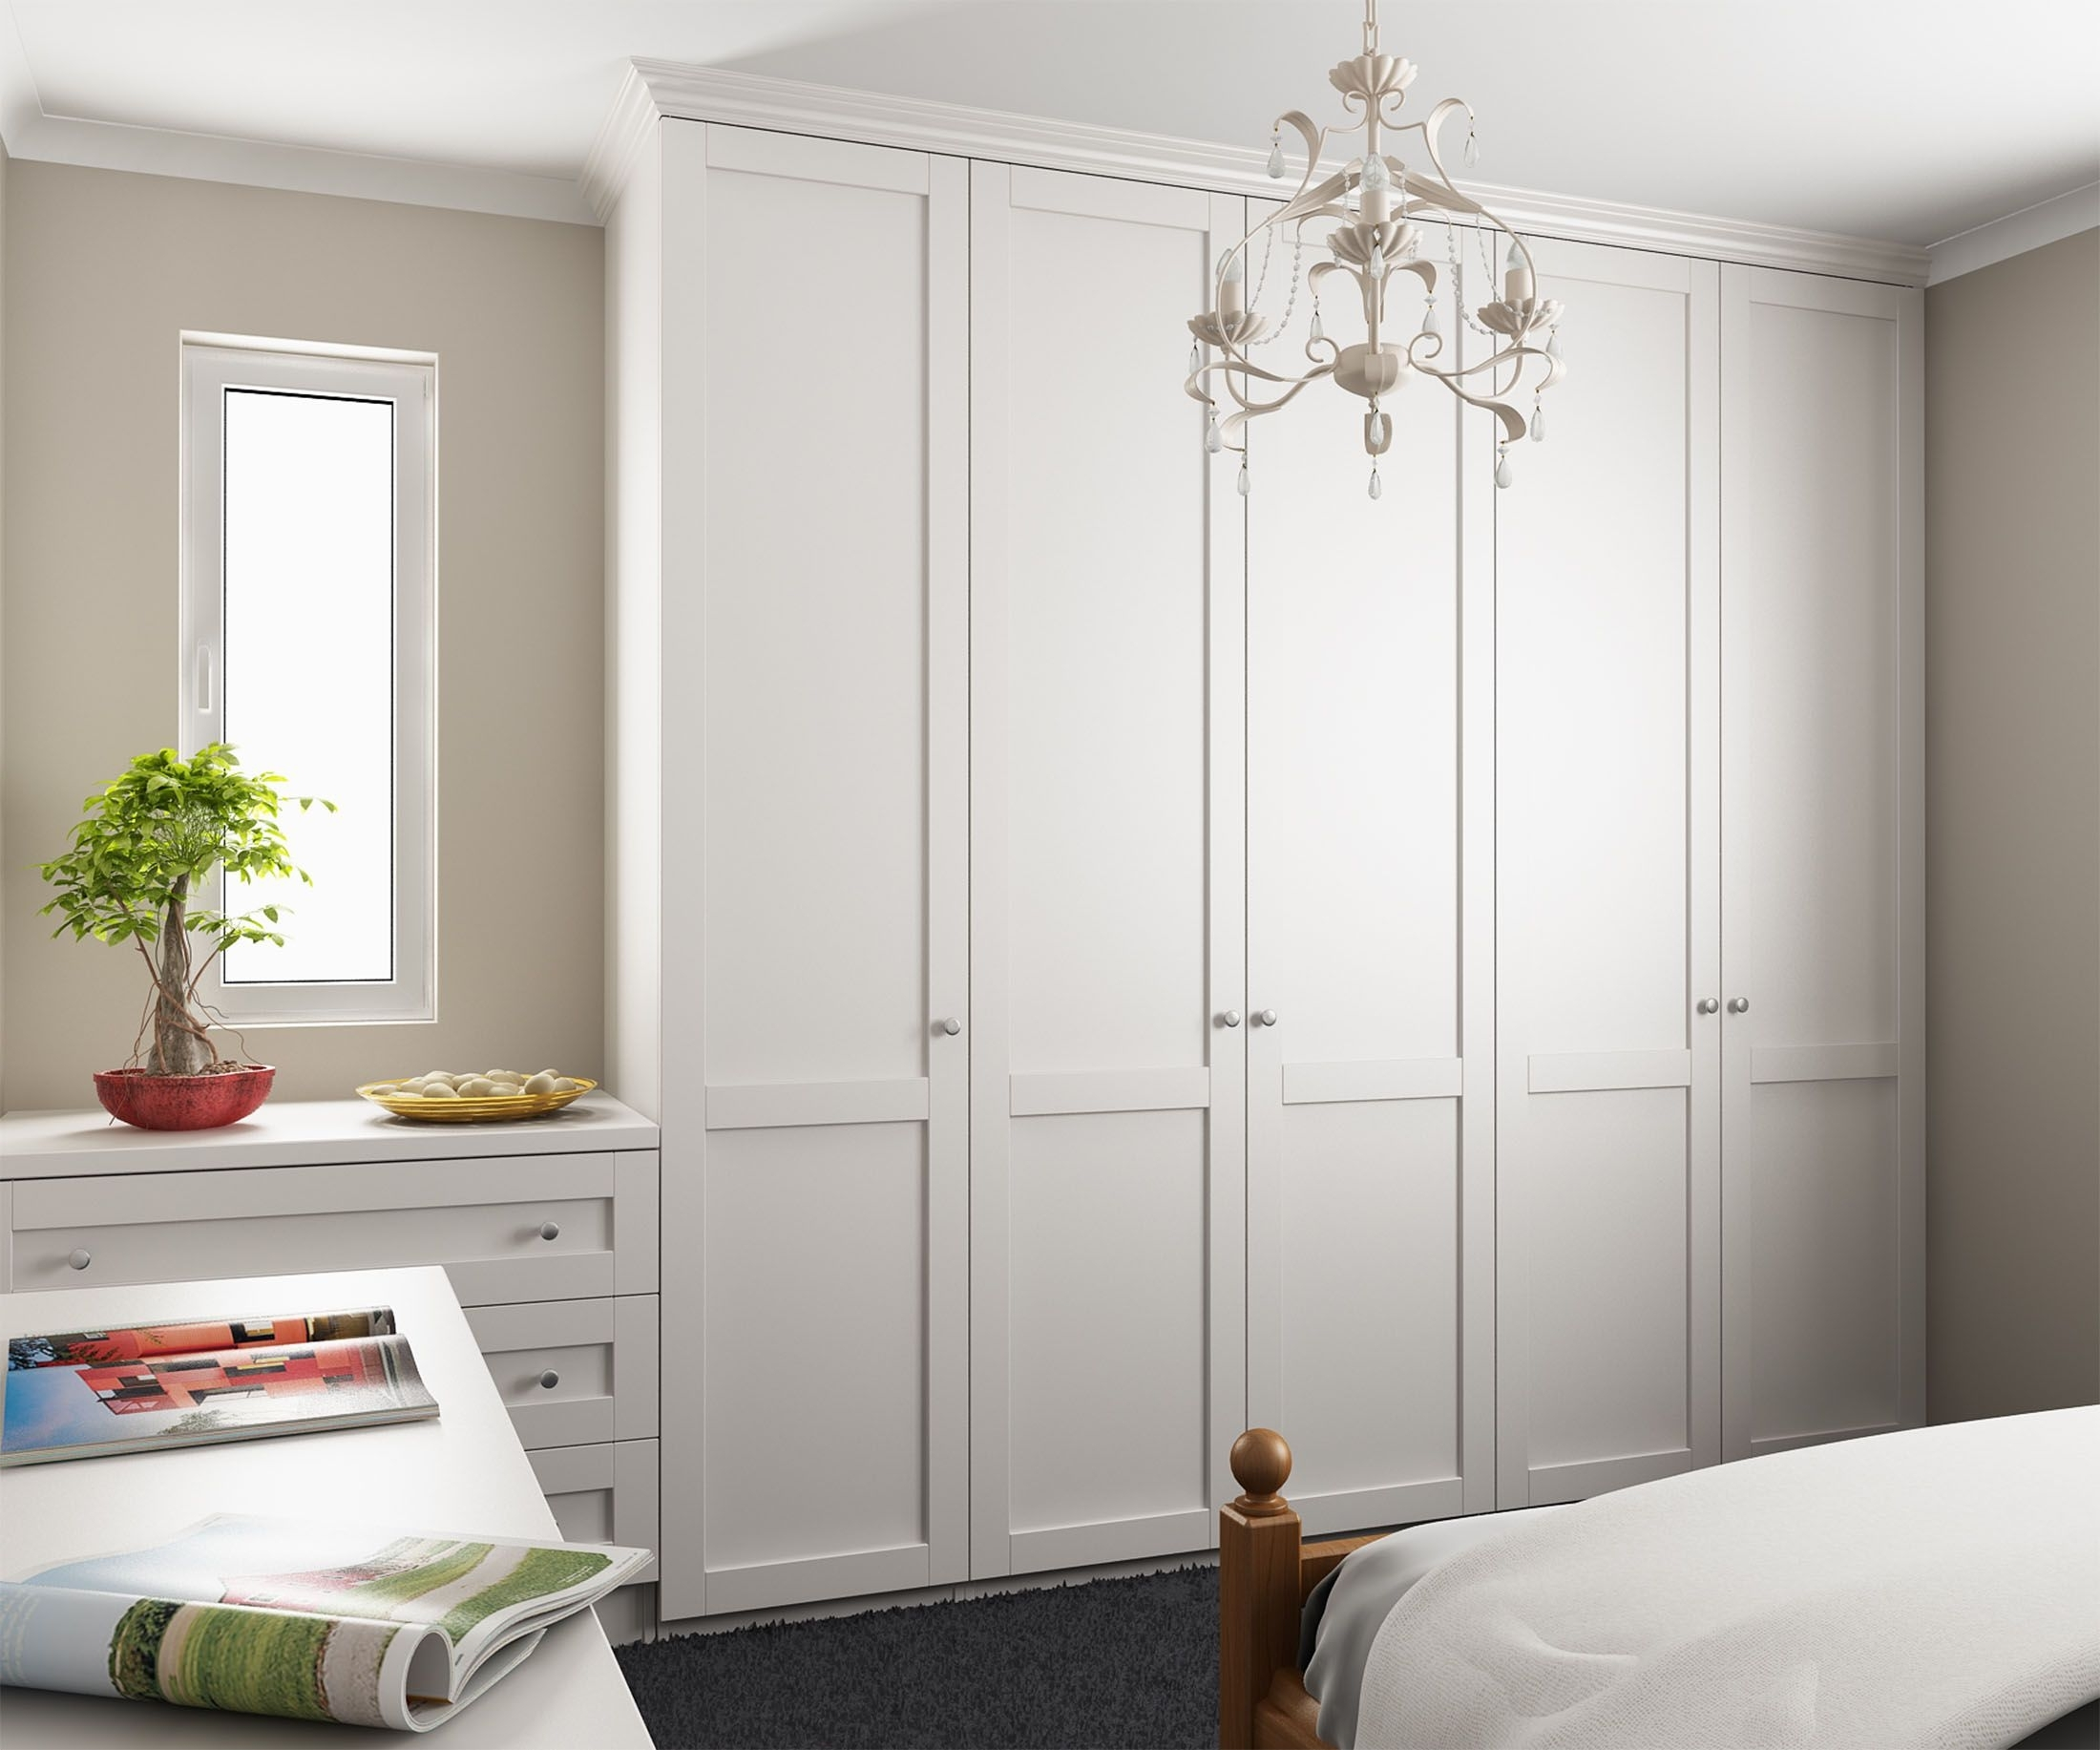 Tall Wardrobes Along Left Wall, Dressing Table/drawers With Mirror Intended For Trendy Tall Wardrobes (View 9 of 15)